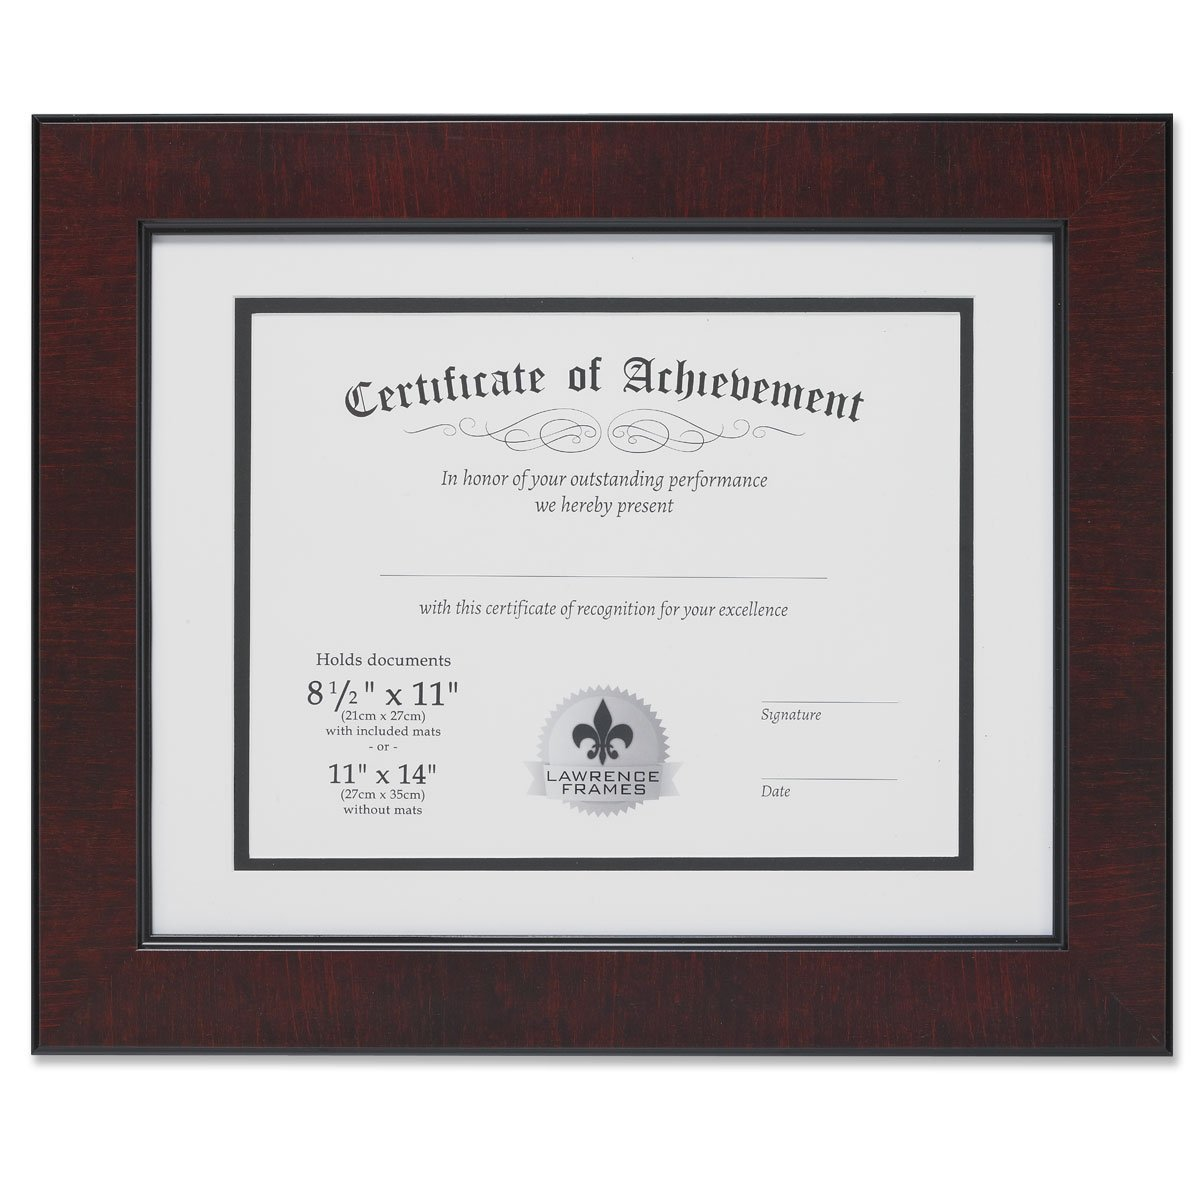 Lawrence Frames Dual Use Faux Burl 11 by 14-Inch Certificate Picture Frame with Double Bevel Cut Matting for 8.5 by 11-Inch Document, Mahogany by Lawrence Frames